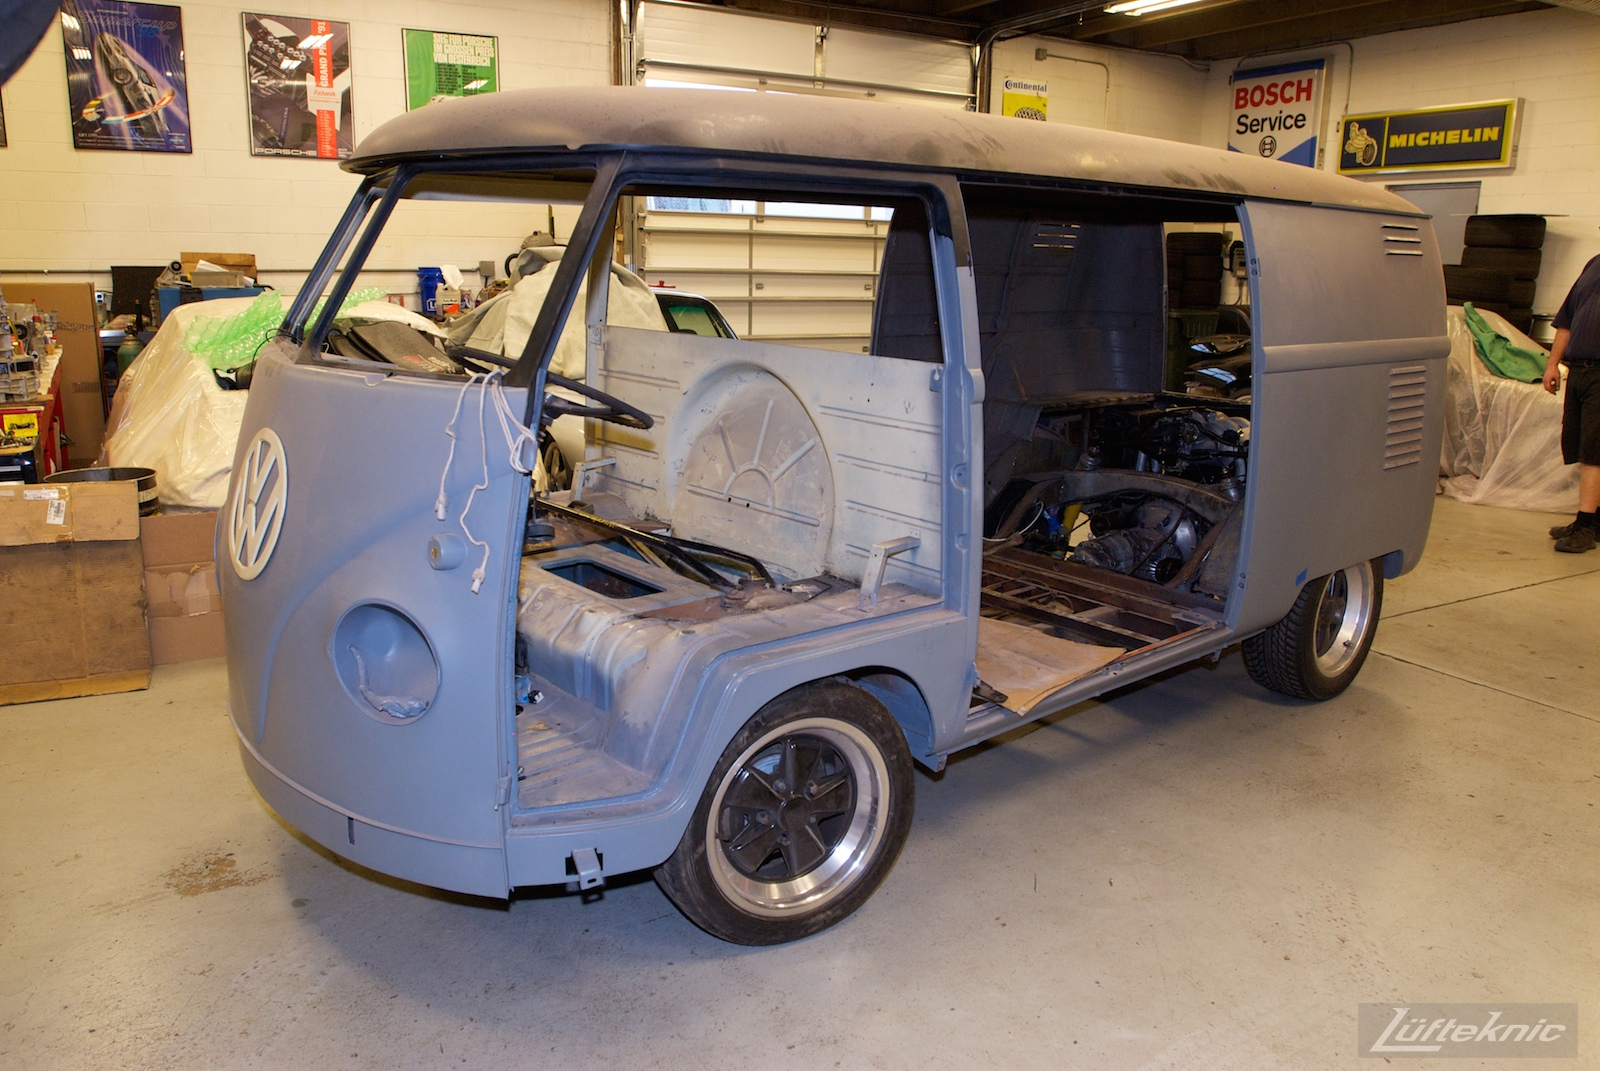 1956 Volkswagen double panel Transporter Porsche Bus with engine installed.